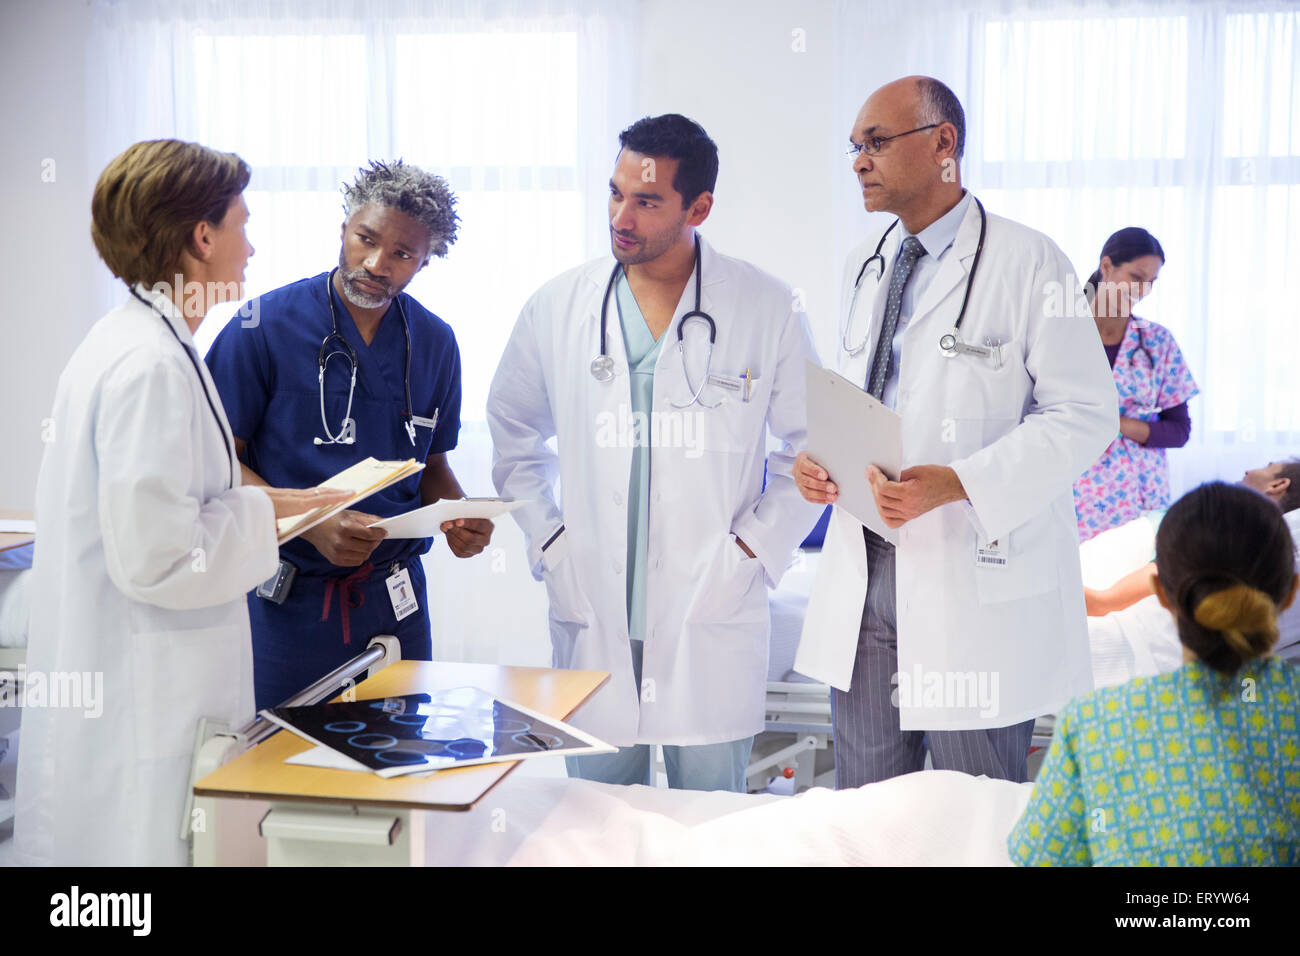 Doctors making rounds and consulting in hospital room - Stock Image